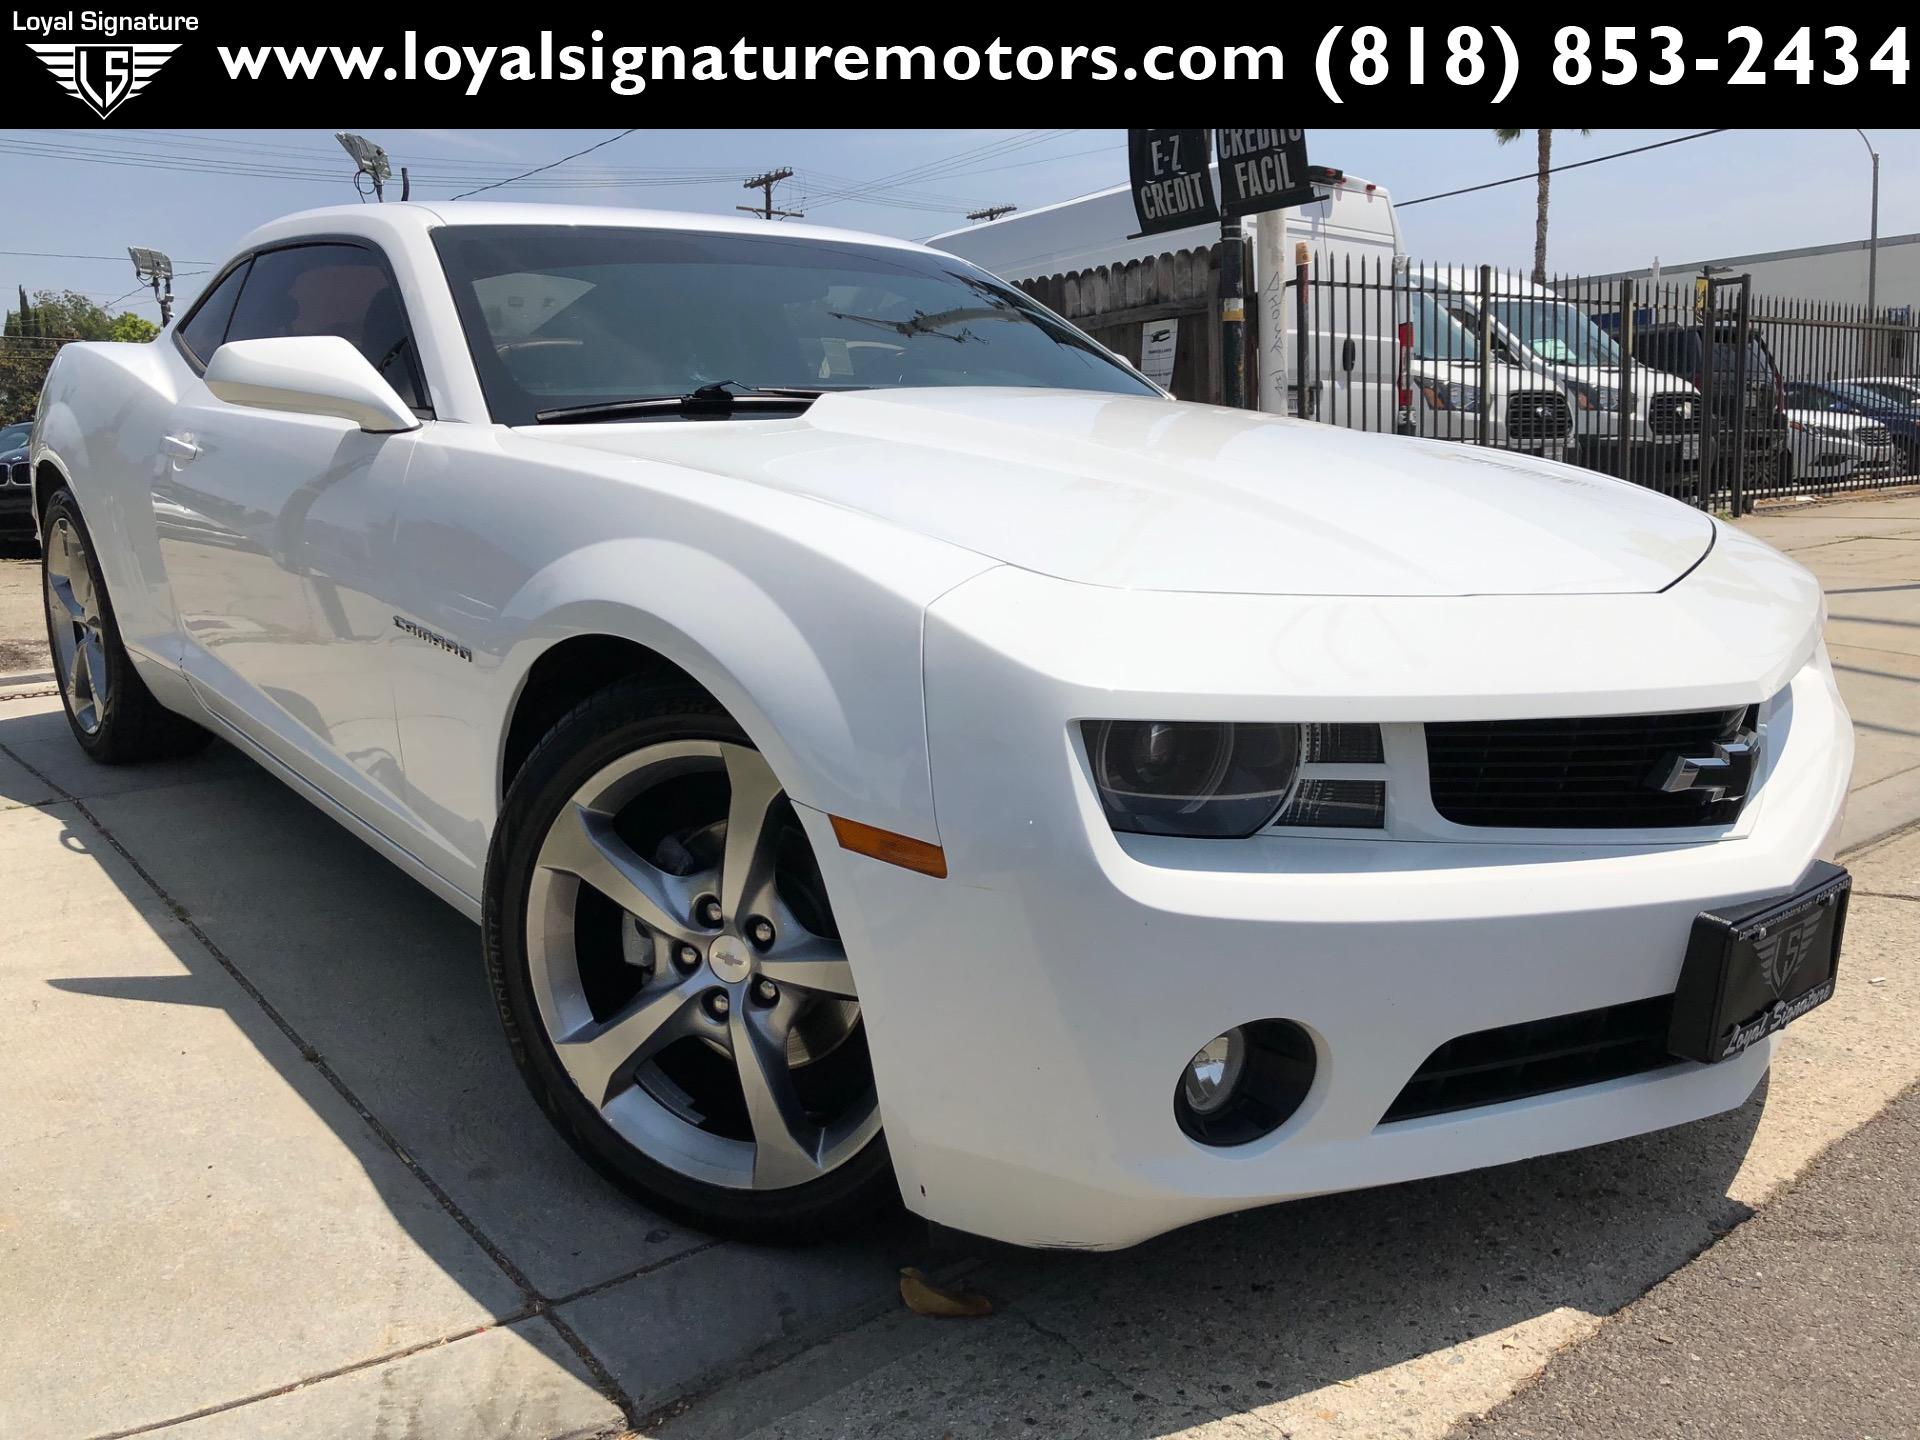 Used-2013-Chevrolet-Camaro-LT